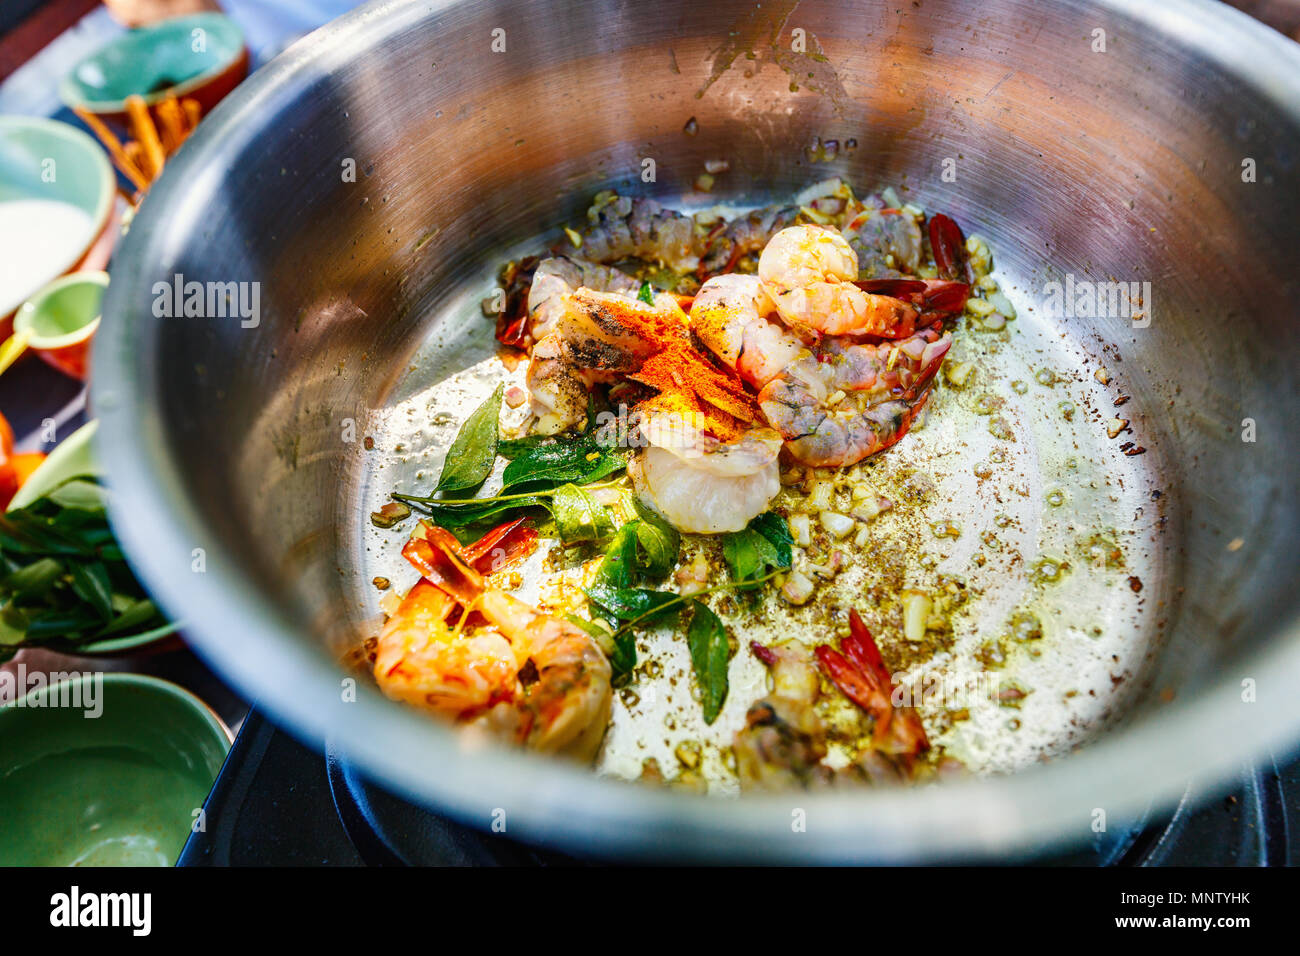 Preparation of traditional Sri Lankan curry dish with shrimps at cooking class - Stock Image